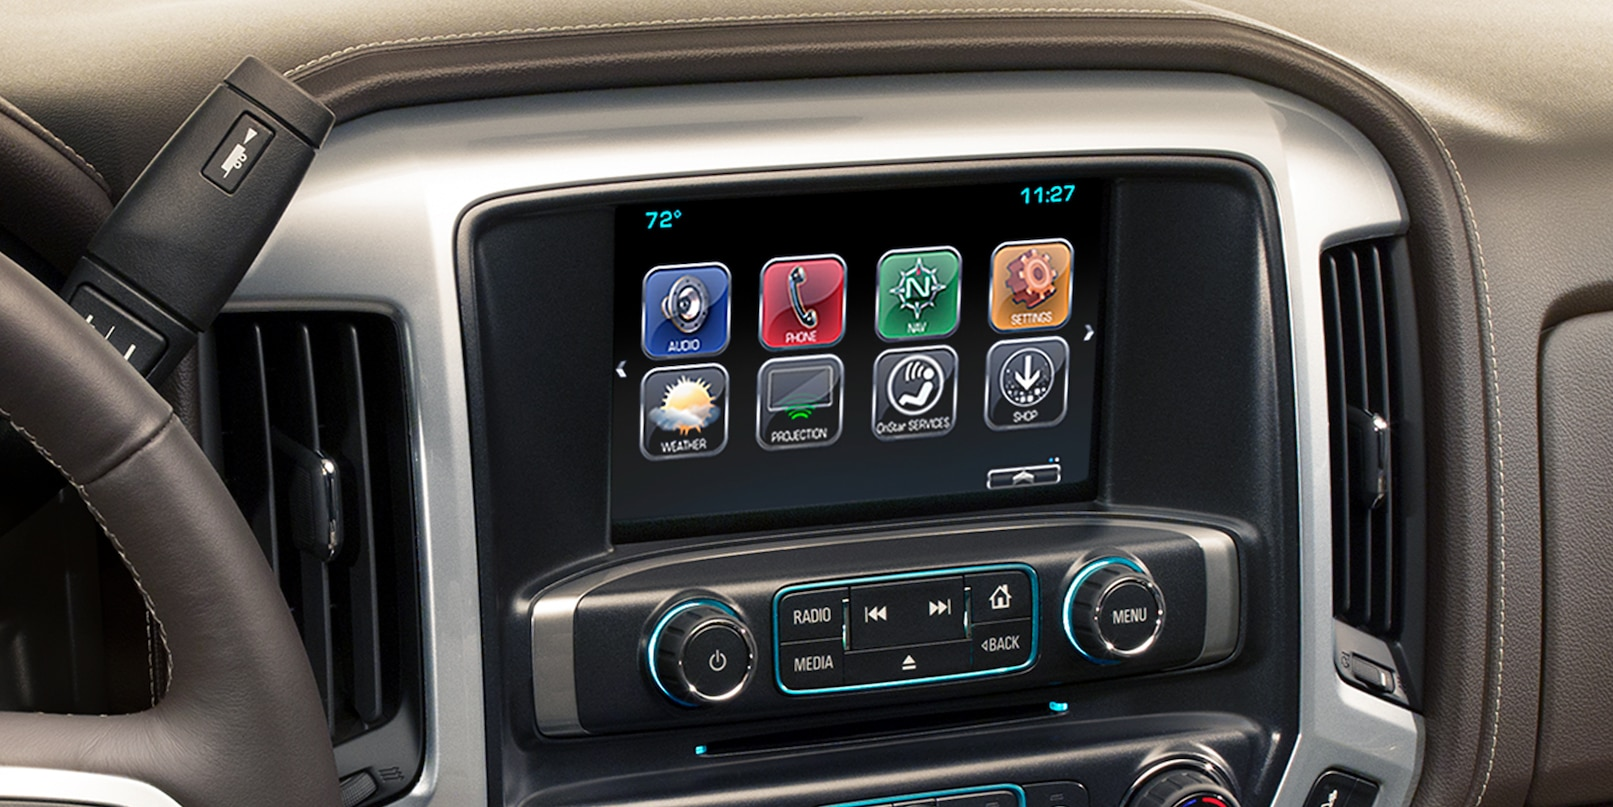 You'll Love All the Apps You Have Access To in the Silverado 1500!